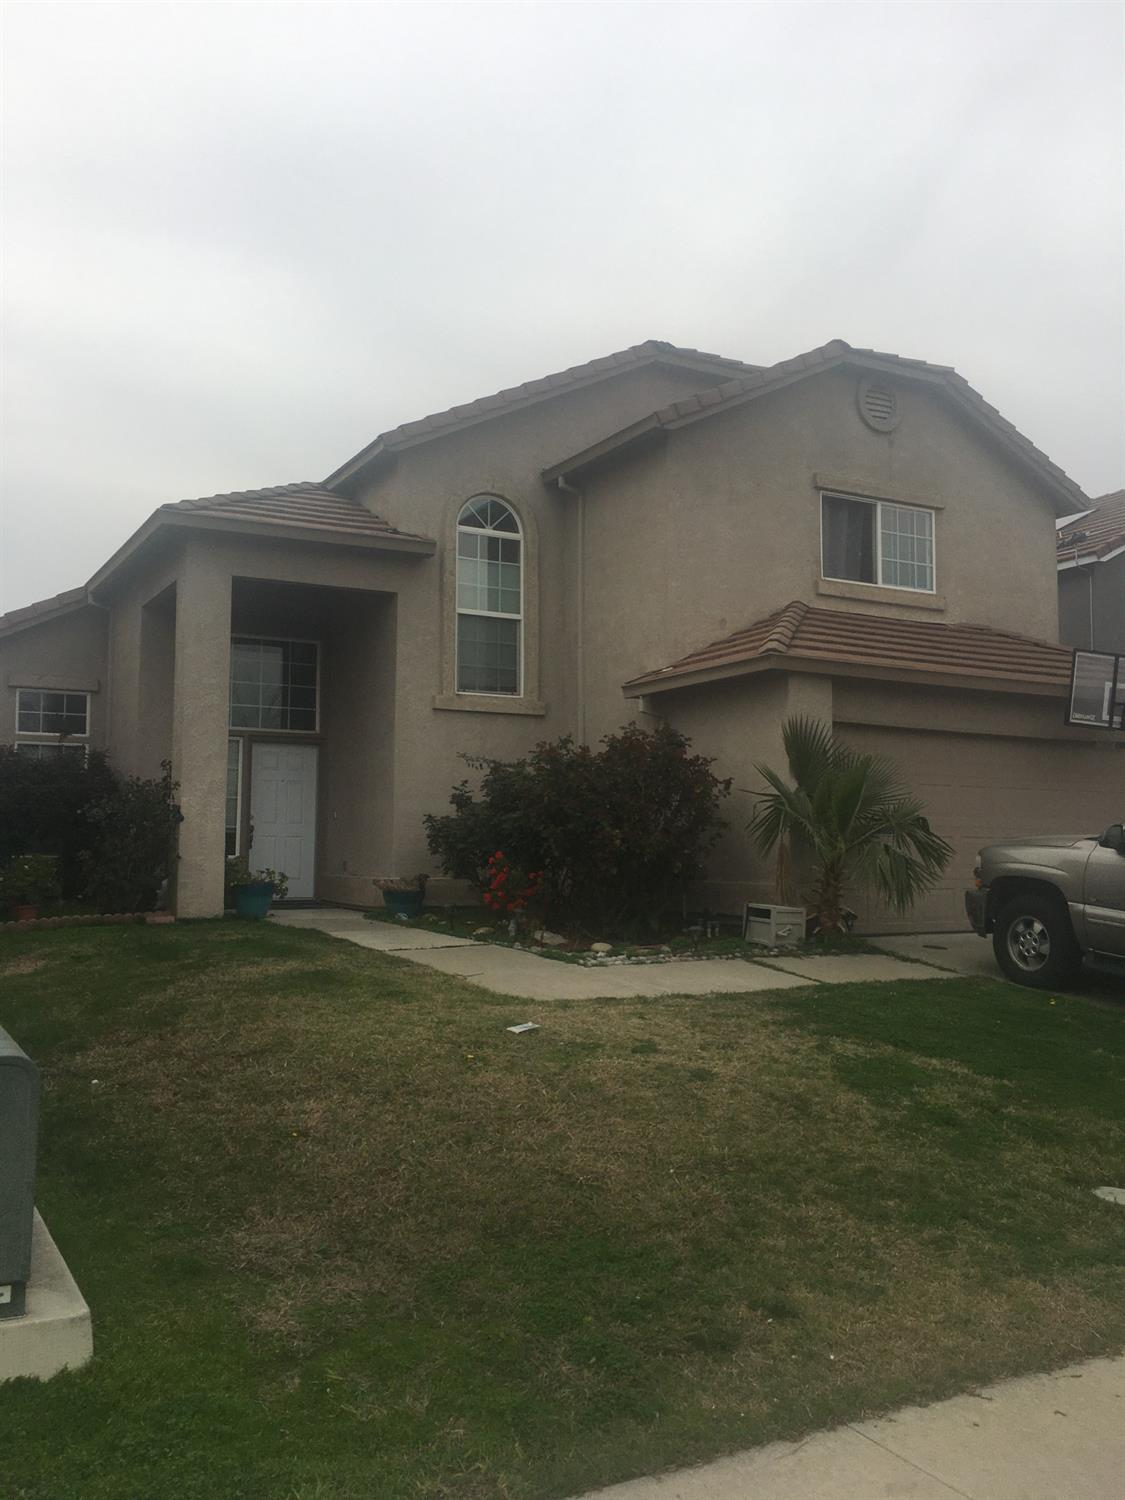 Photo of 3935 Pamela Lane, Stockton, CA 95206